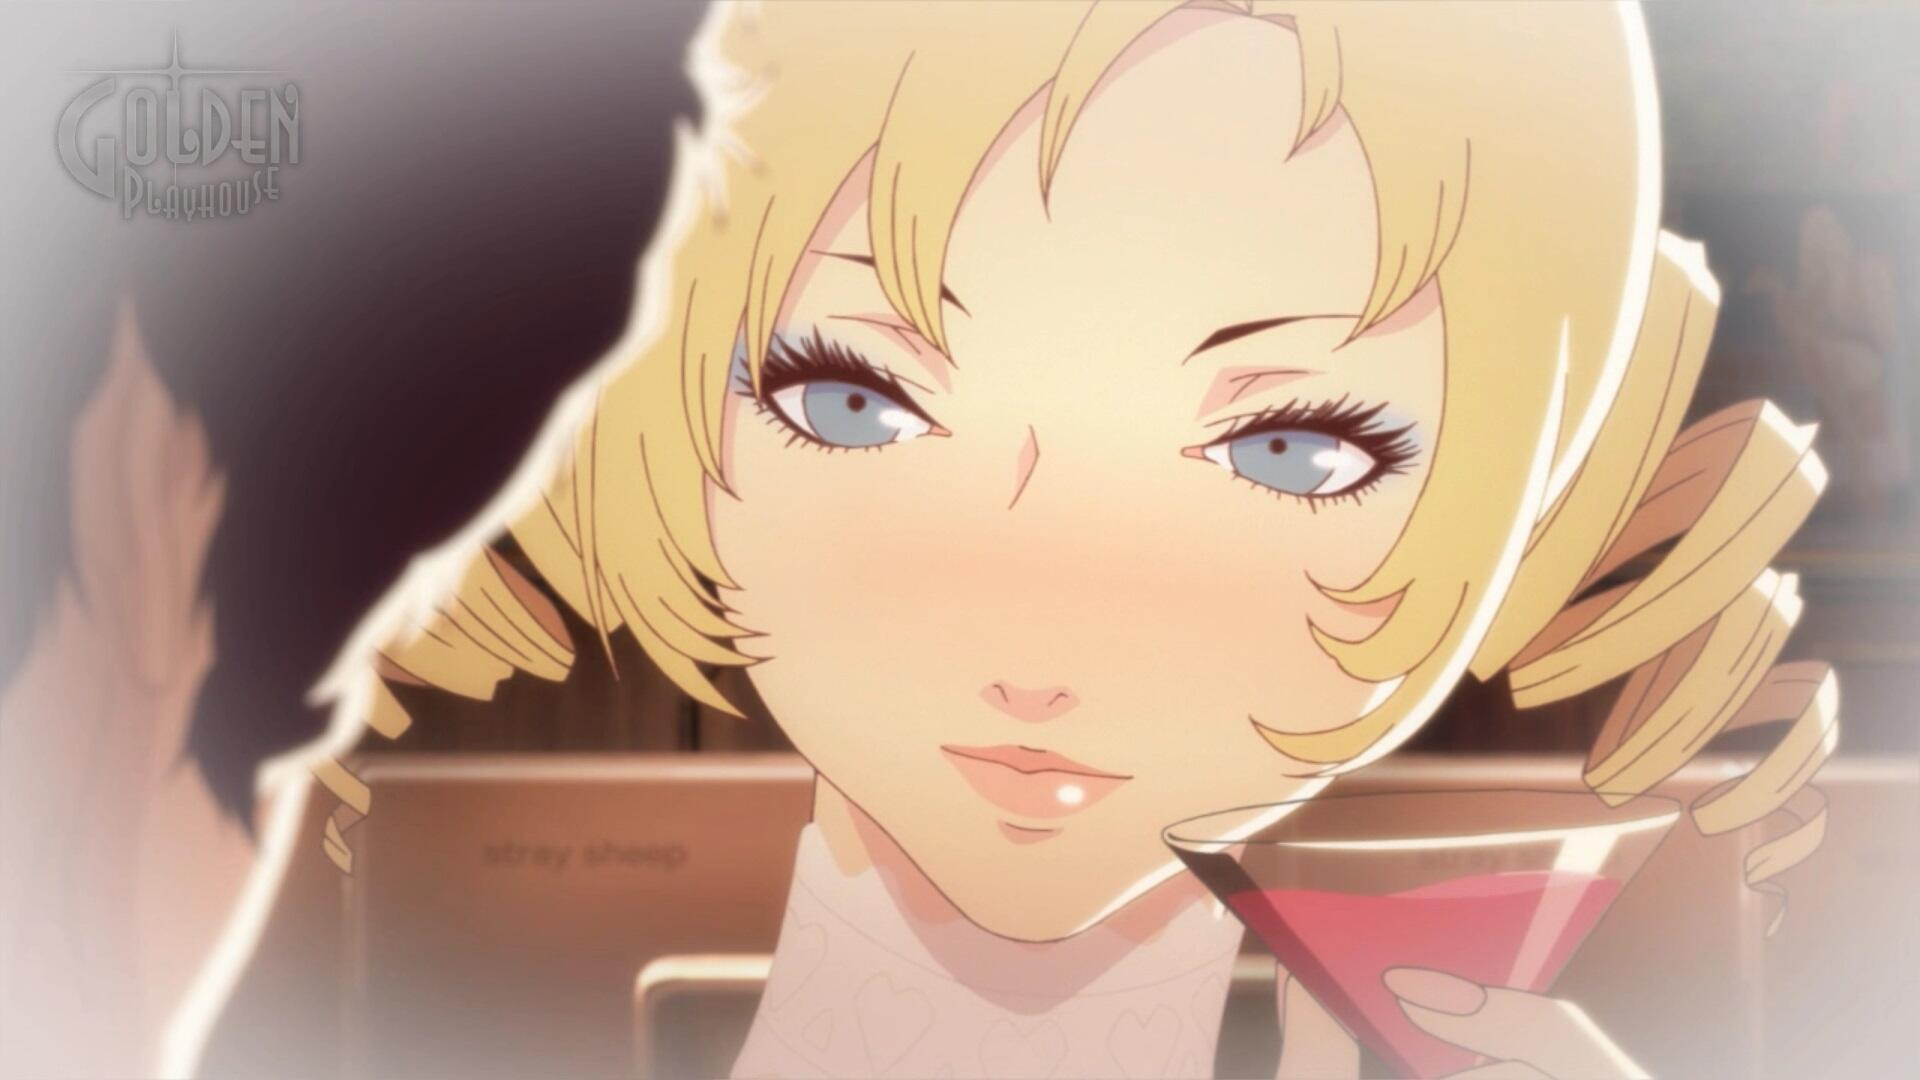 With Catherine Releasing on PC, We Look Back on One of the First Major Games to Take Adulthood Seriously